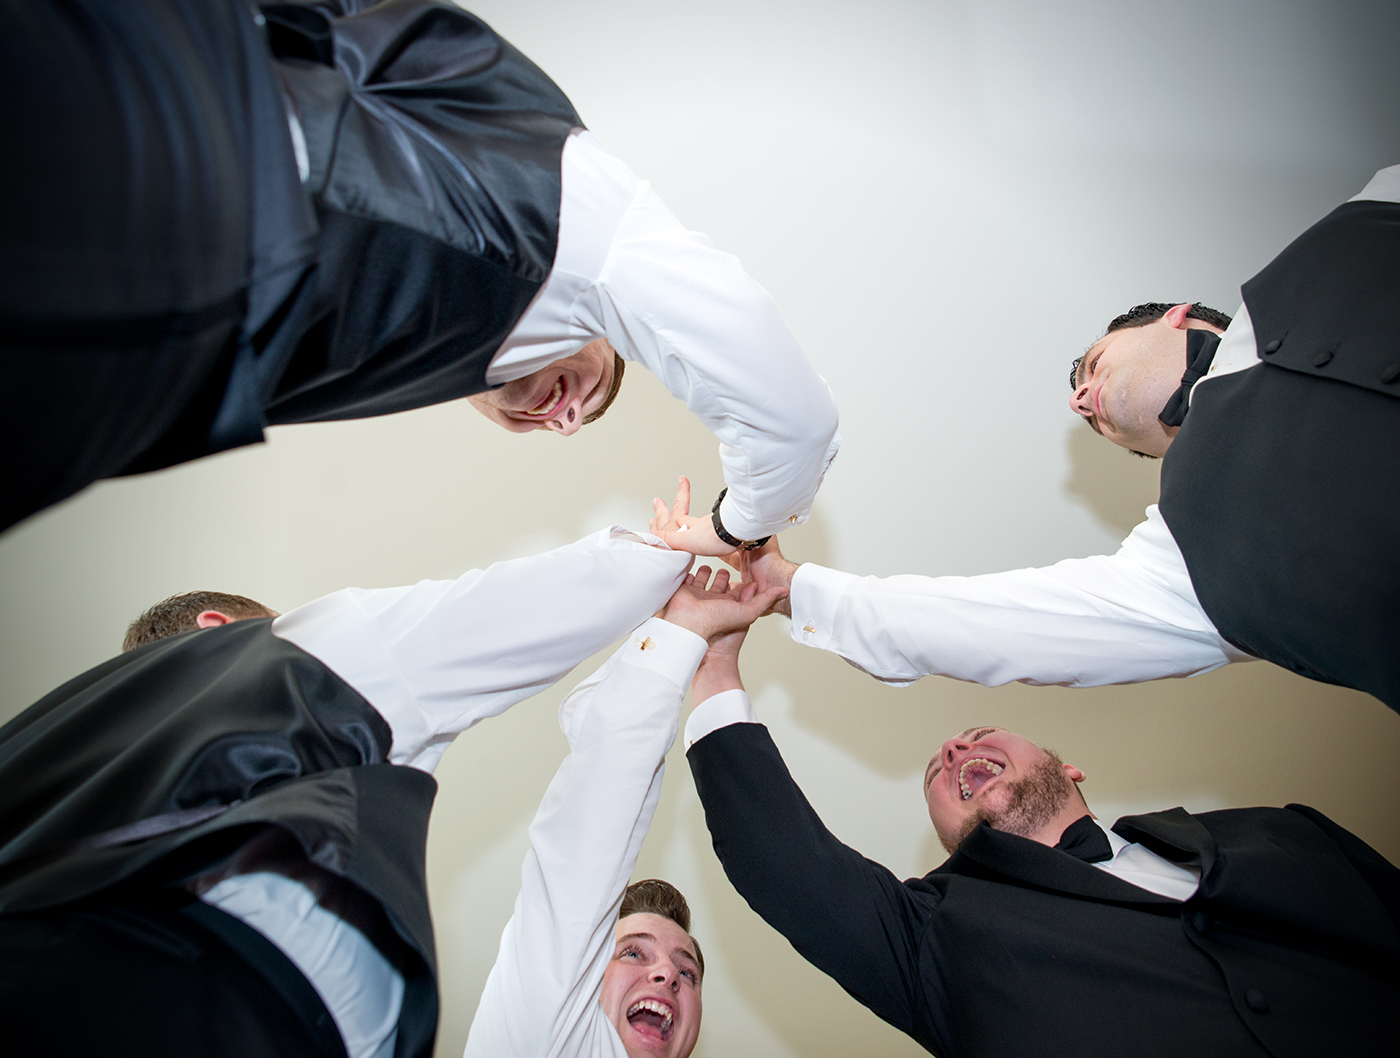 A groom and his groomsmen give a high five fist bump at a wedding at the stockroom at 230 in raleigh, nc